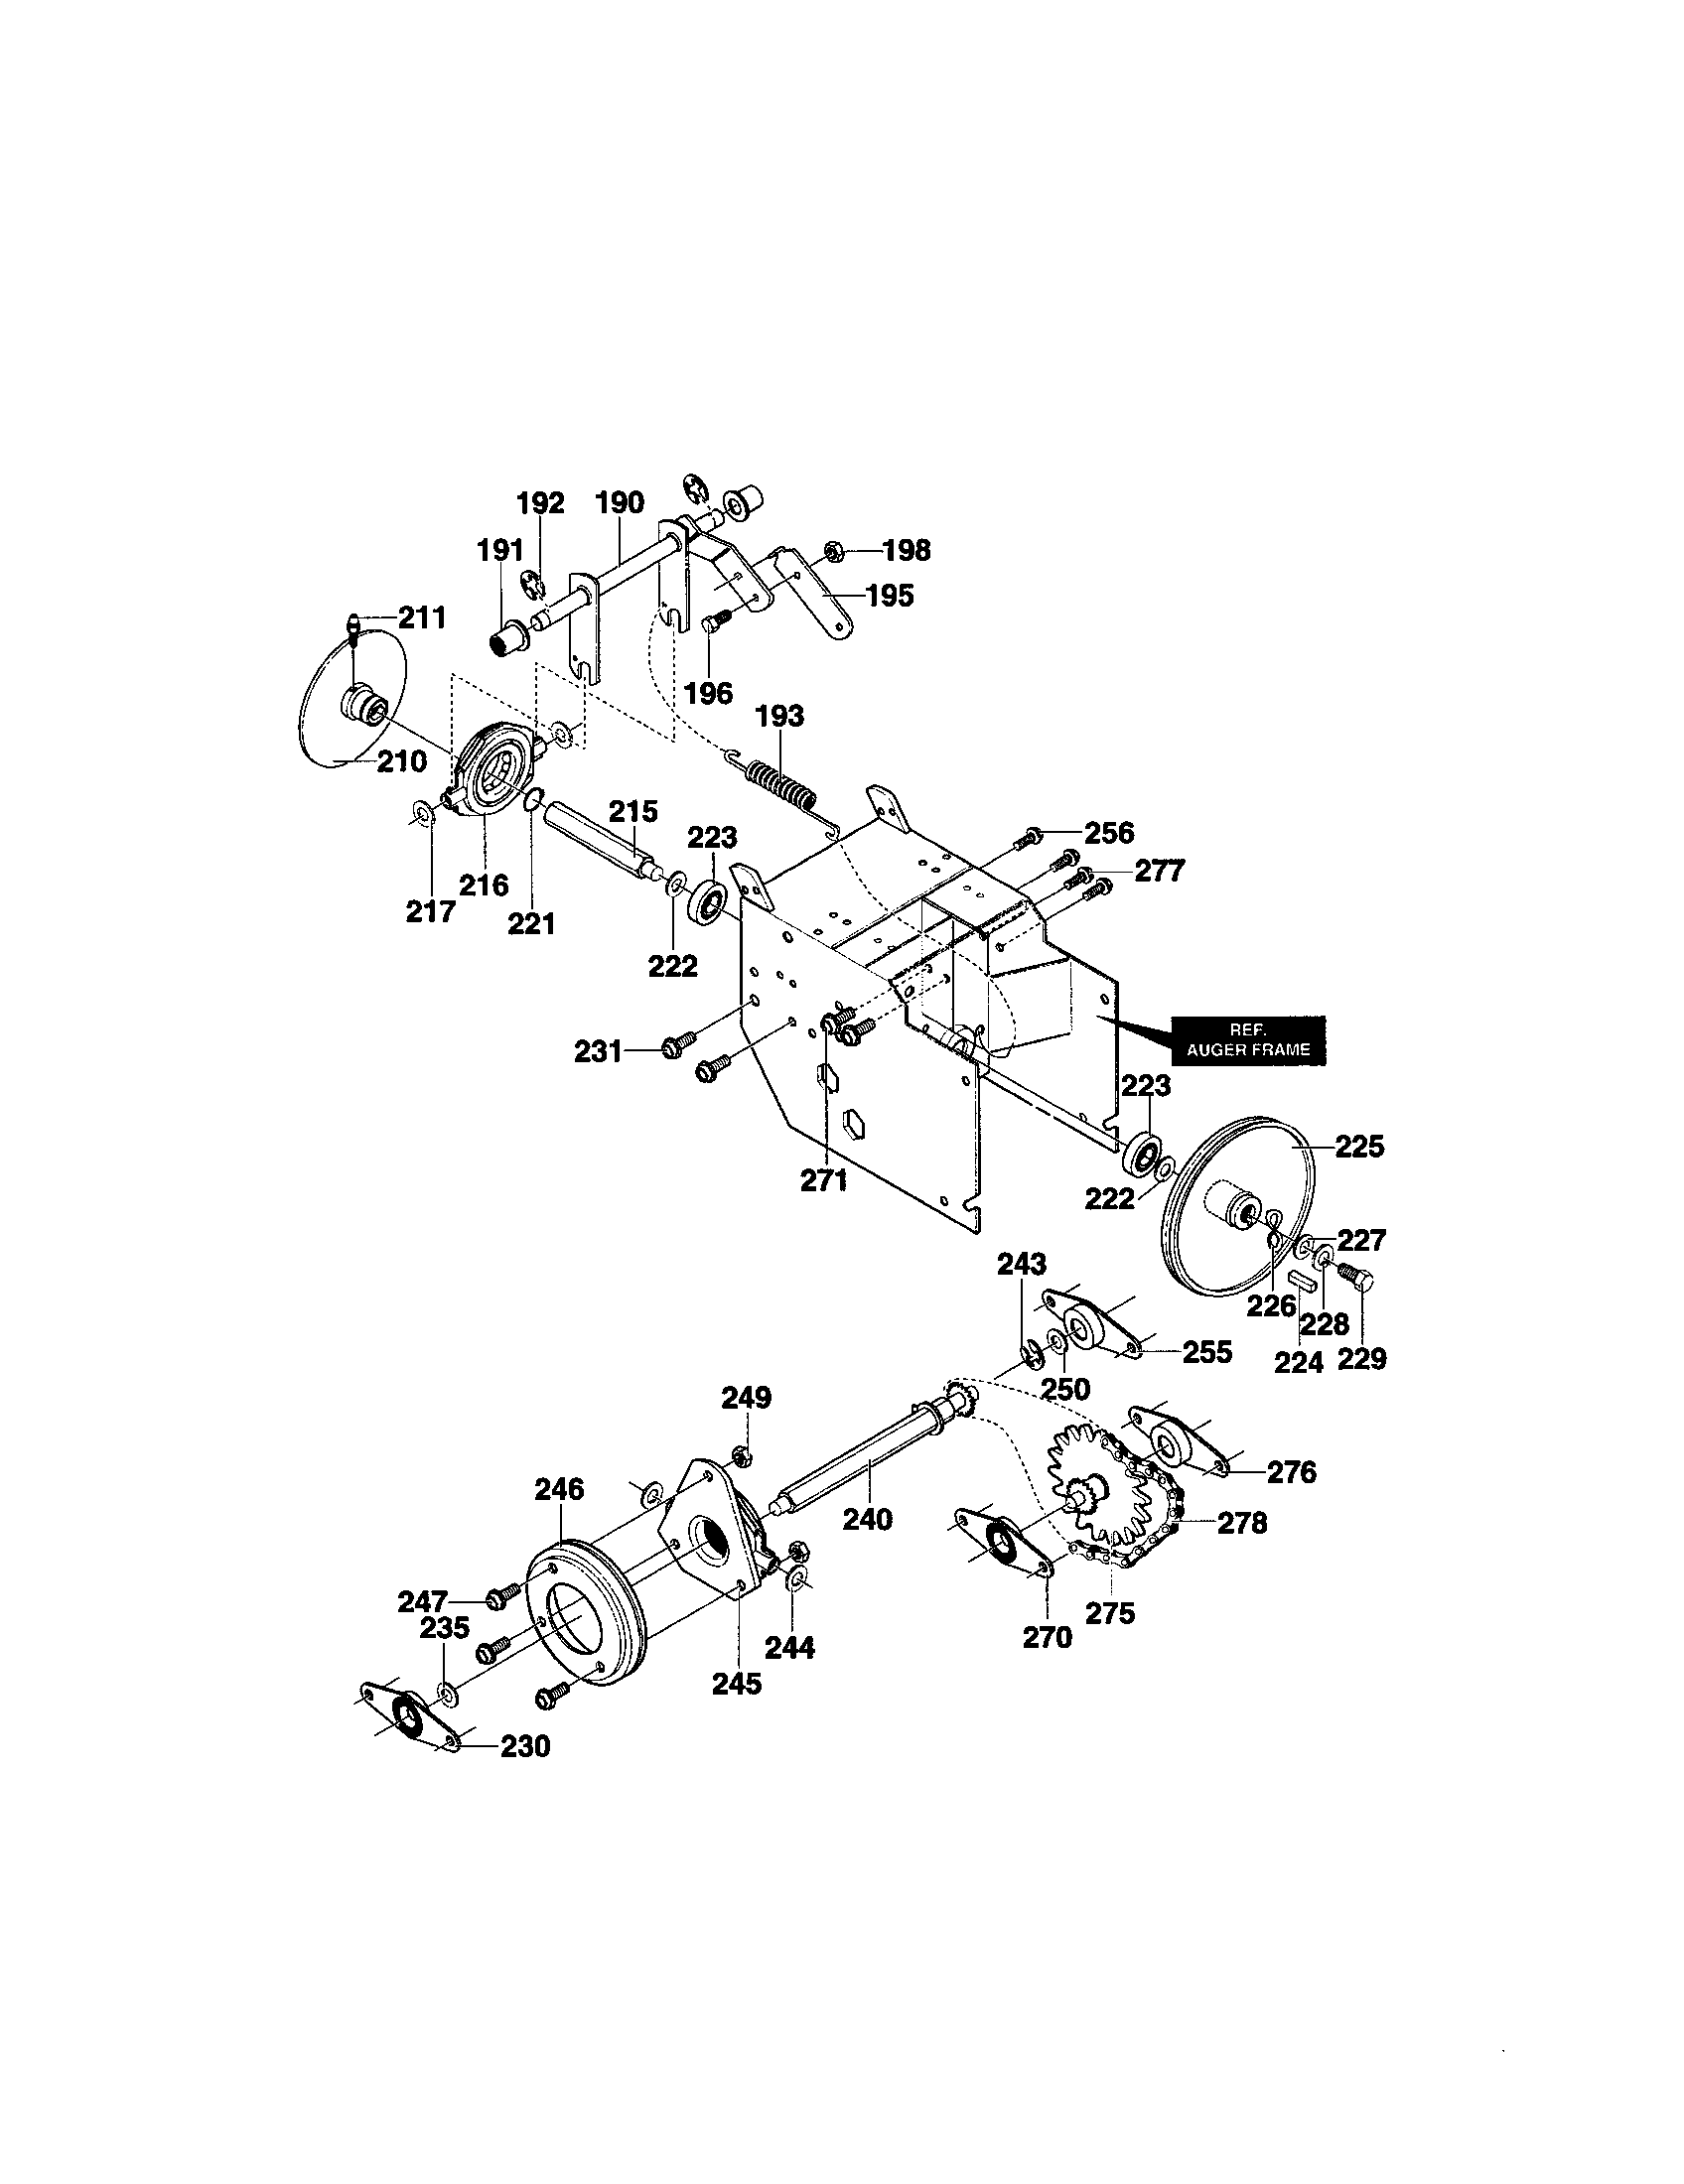 hight resolution of craftsman 536886480 drive components diagram